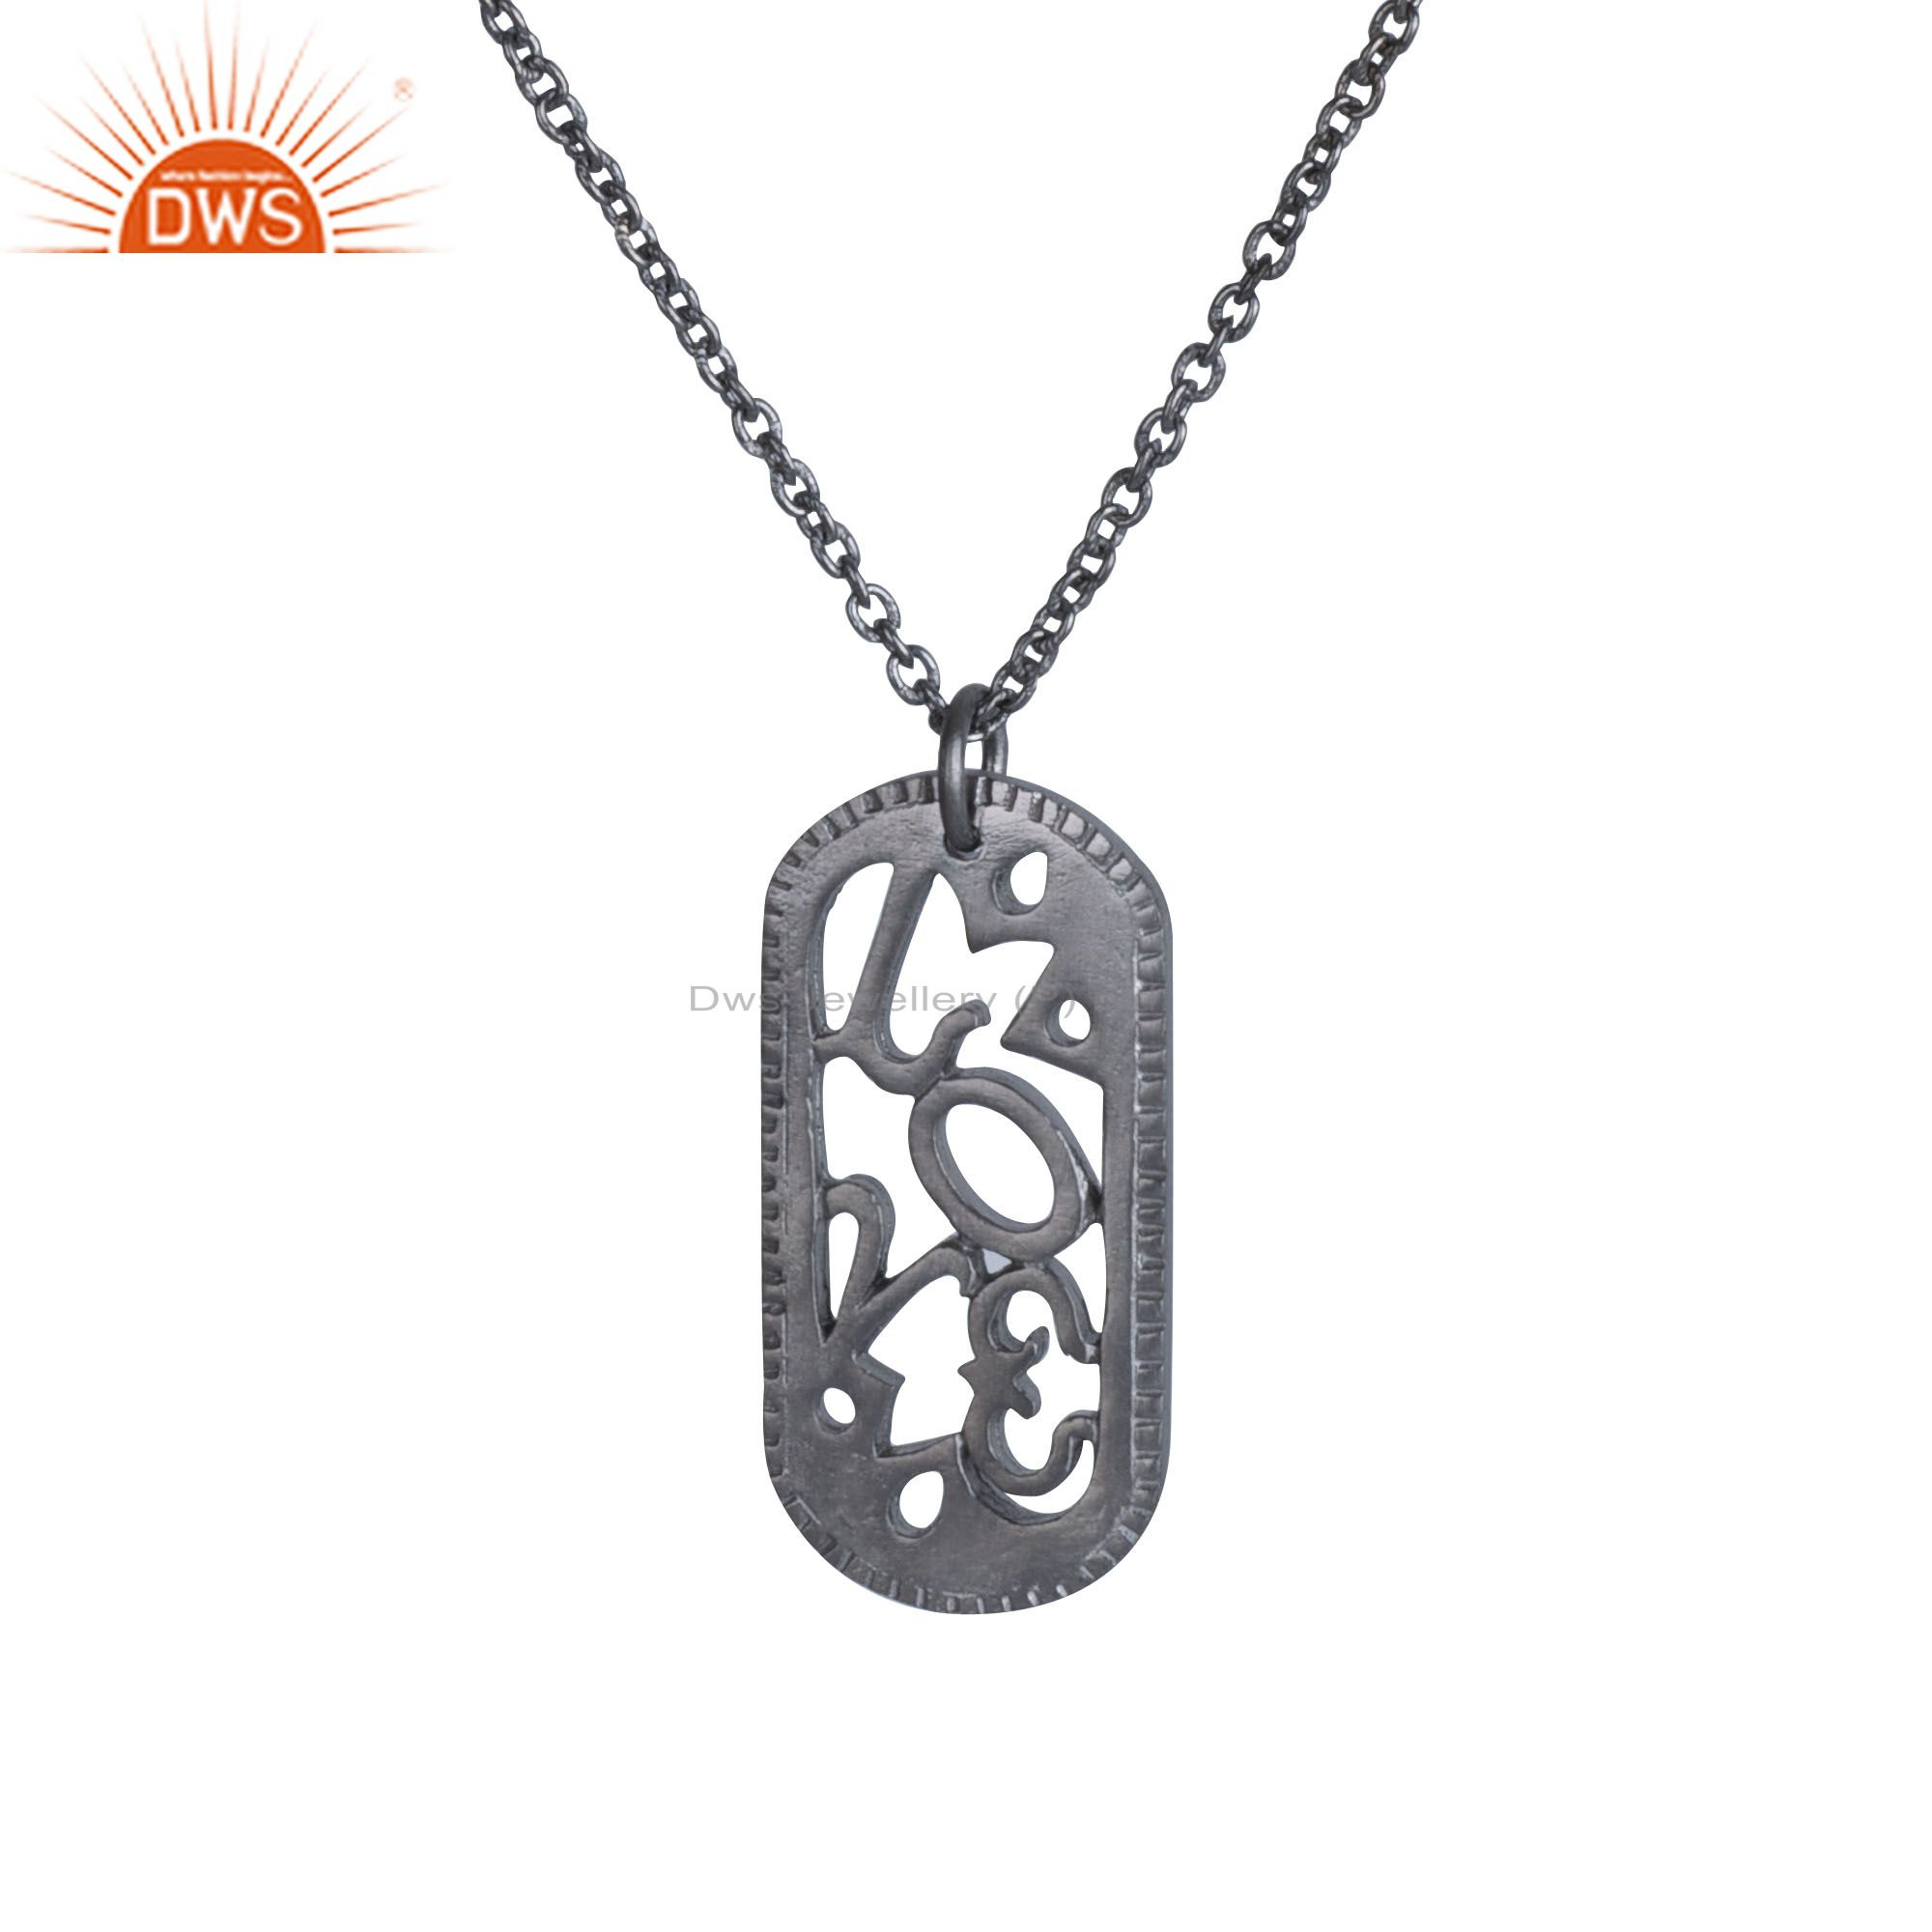 Black rhodium plated solid sterling silver designer oval pendant with chain